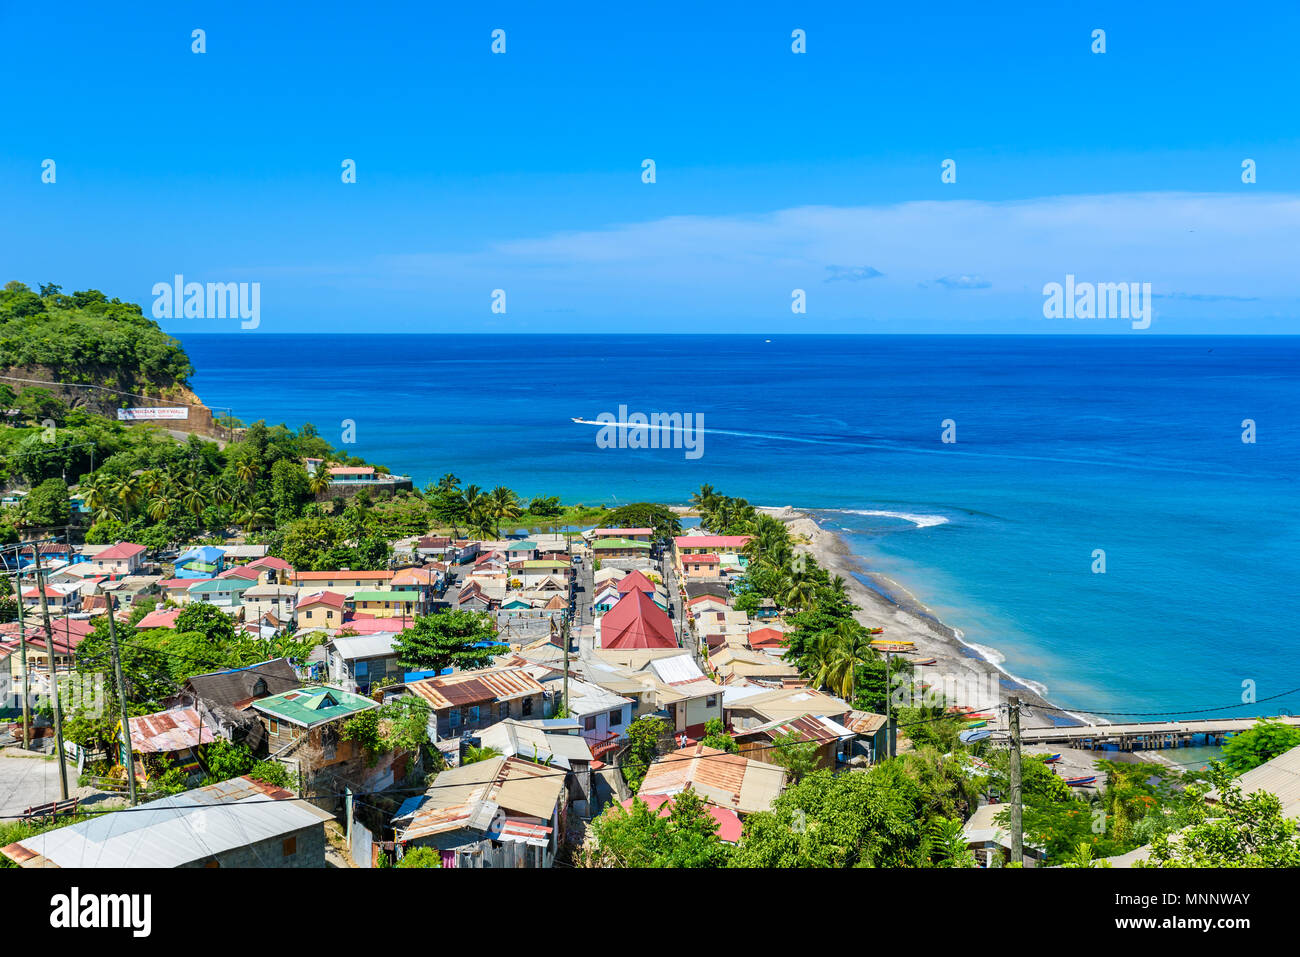 Canaries - Village on the Caribbean island of St. Lucia. It is a paradise destination with a white sand beach and turquoiuse sea. - Stock Image